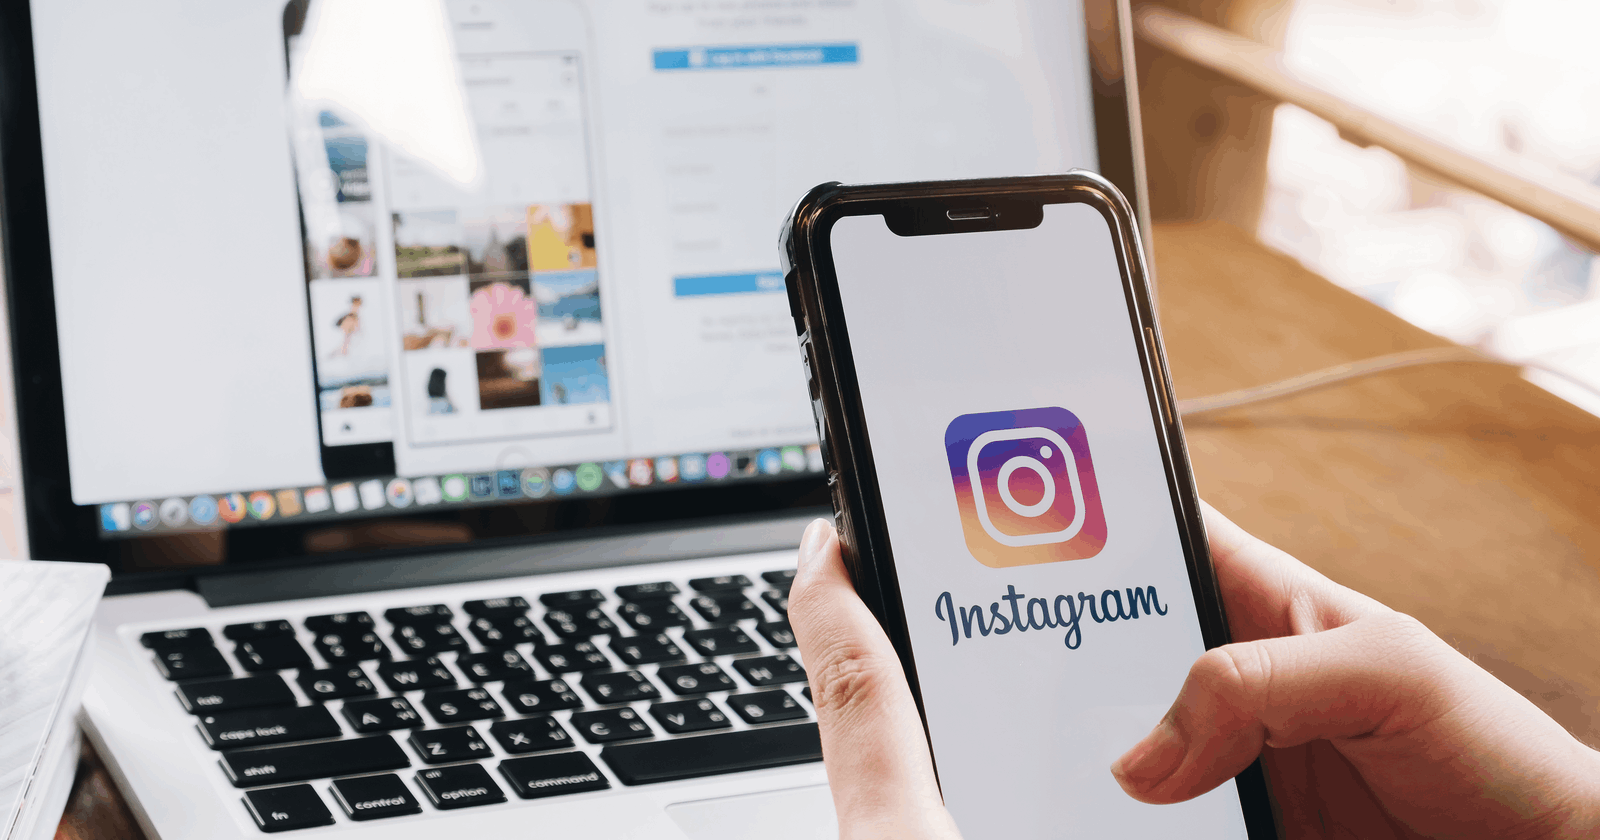 15 Insane Facts About Instagram